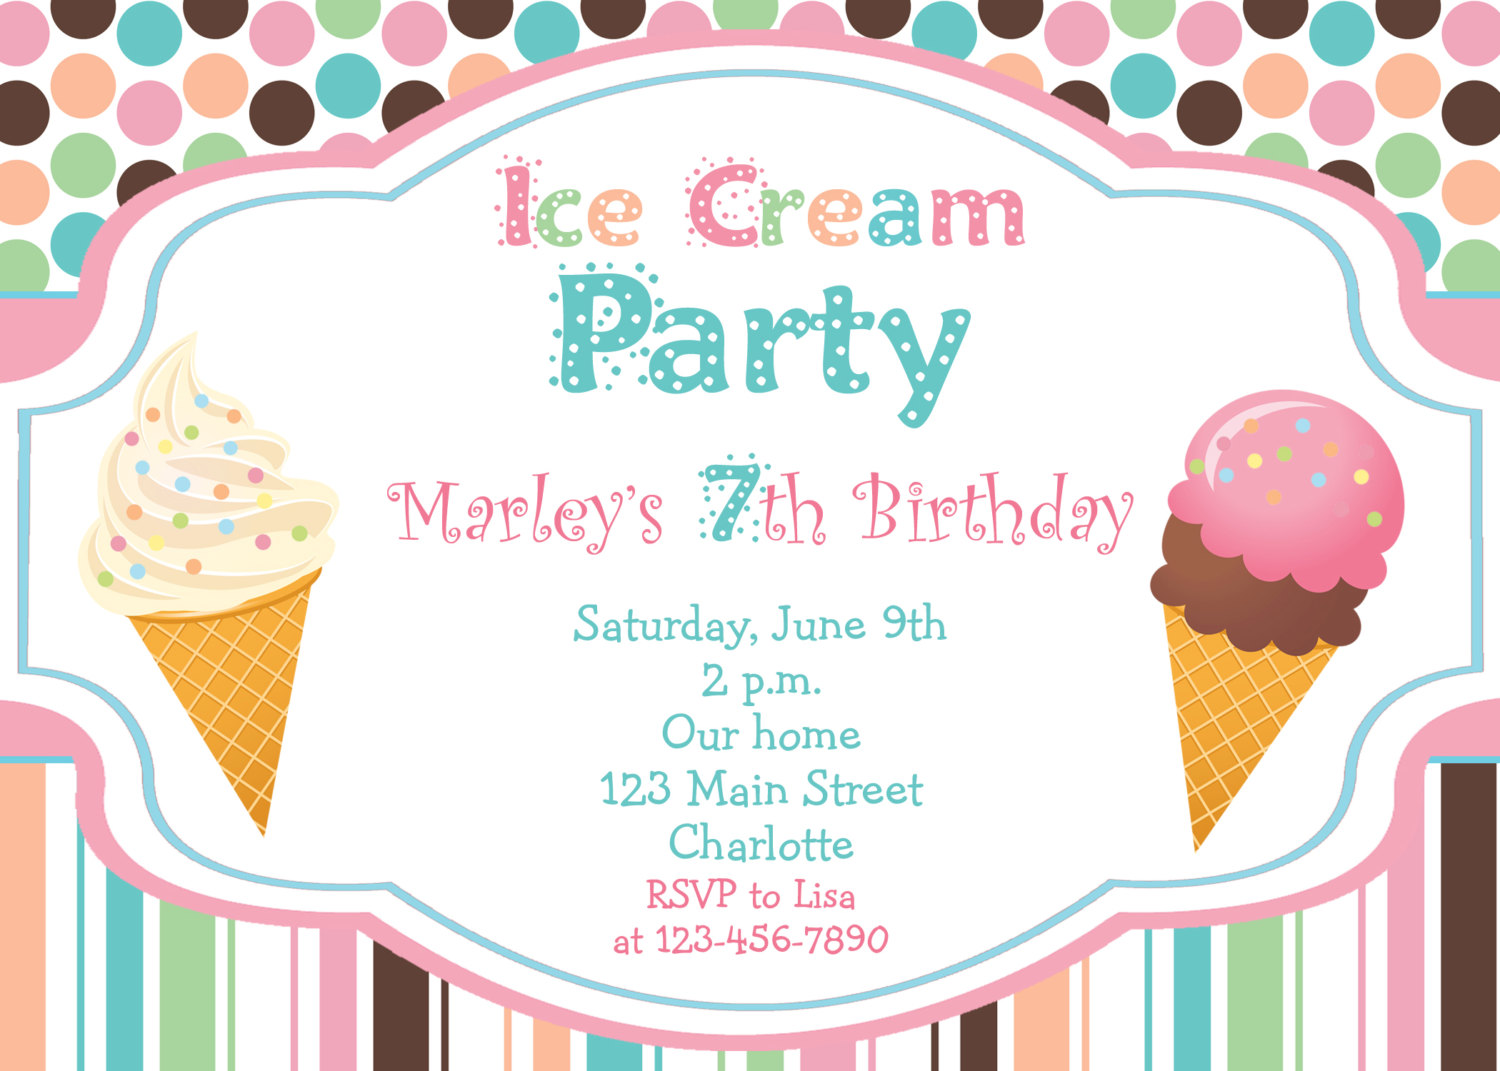 Dessert Party Invitations Mickey Mouse Invitations Templates - Dessert party invitation template